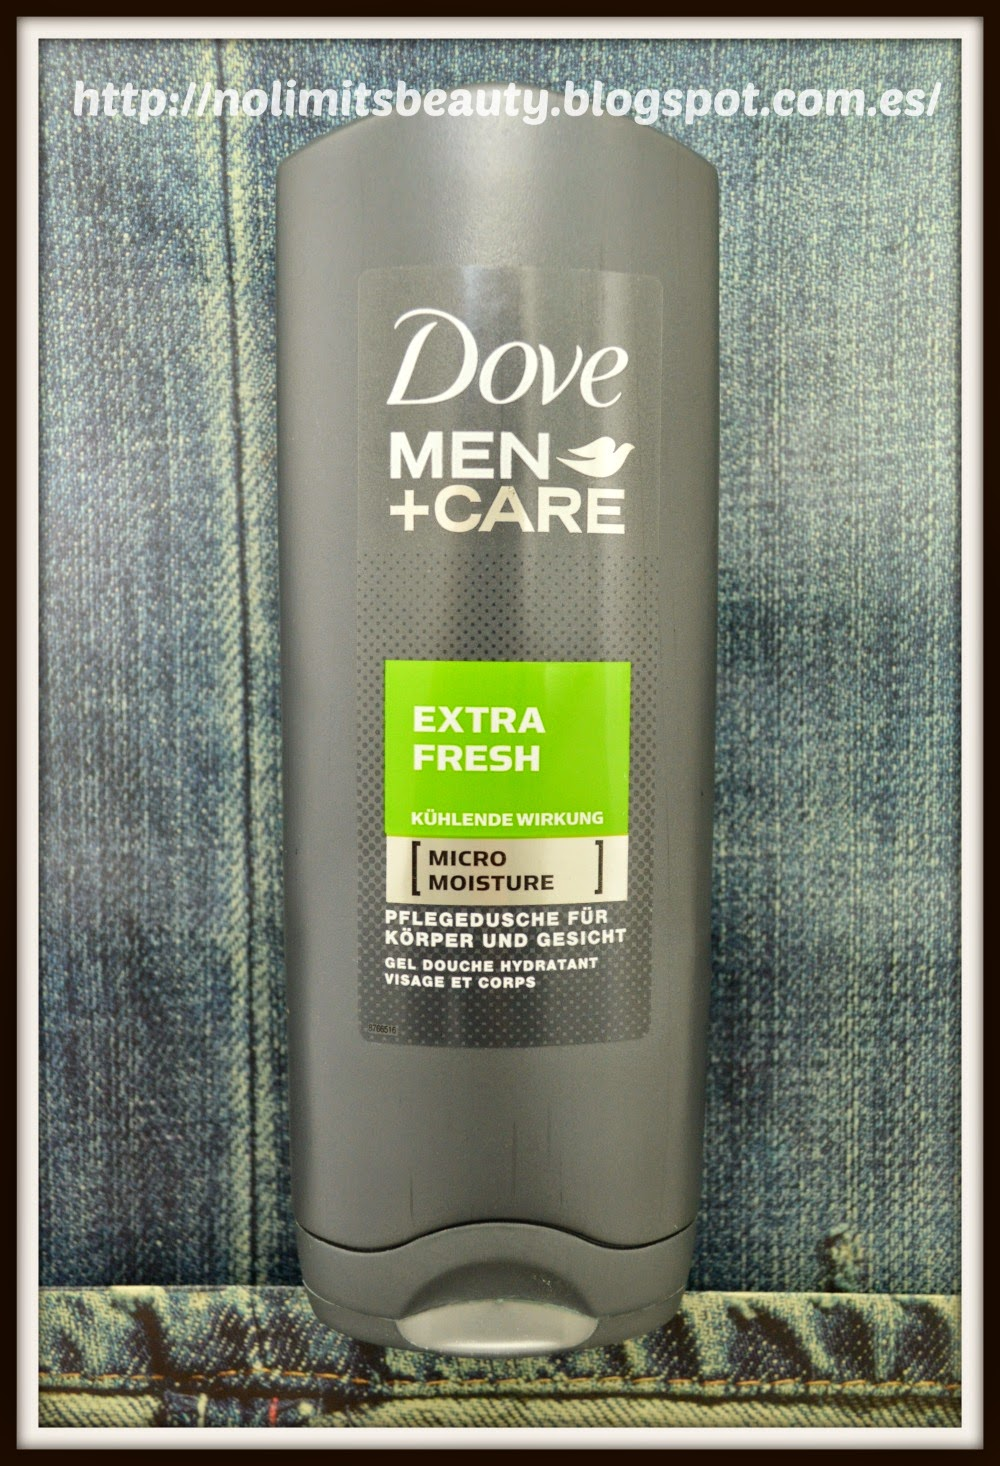 Dove Men + Care Extra Fresh